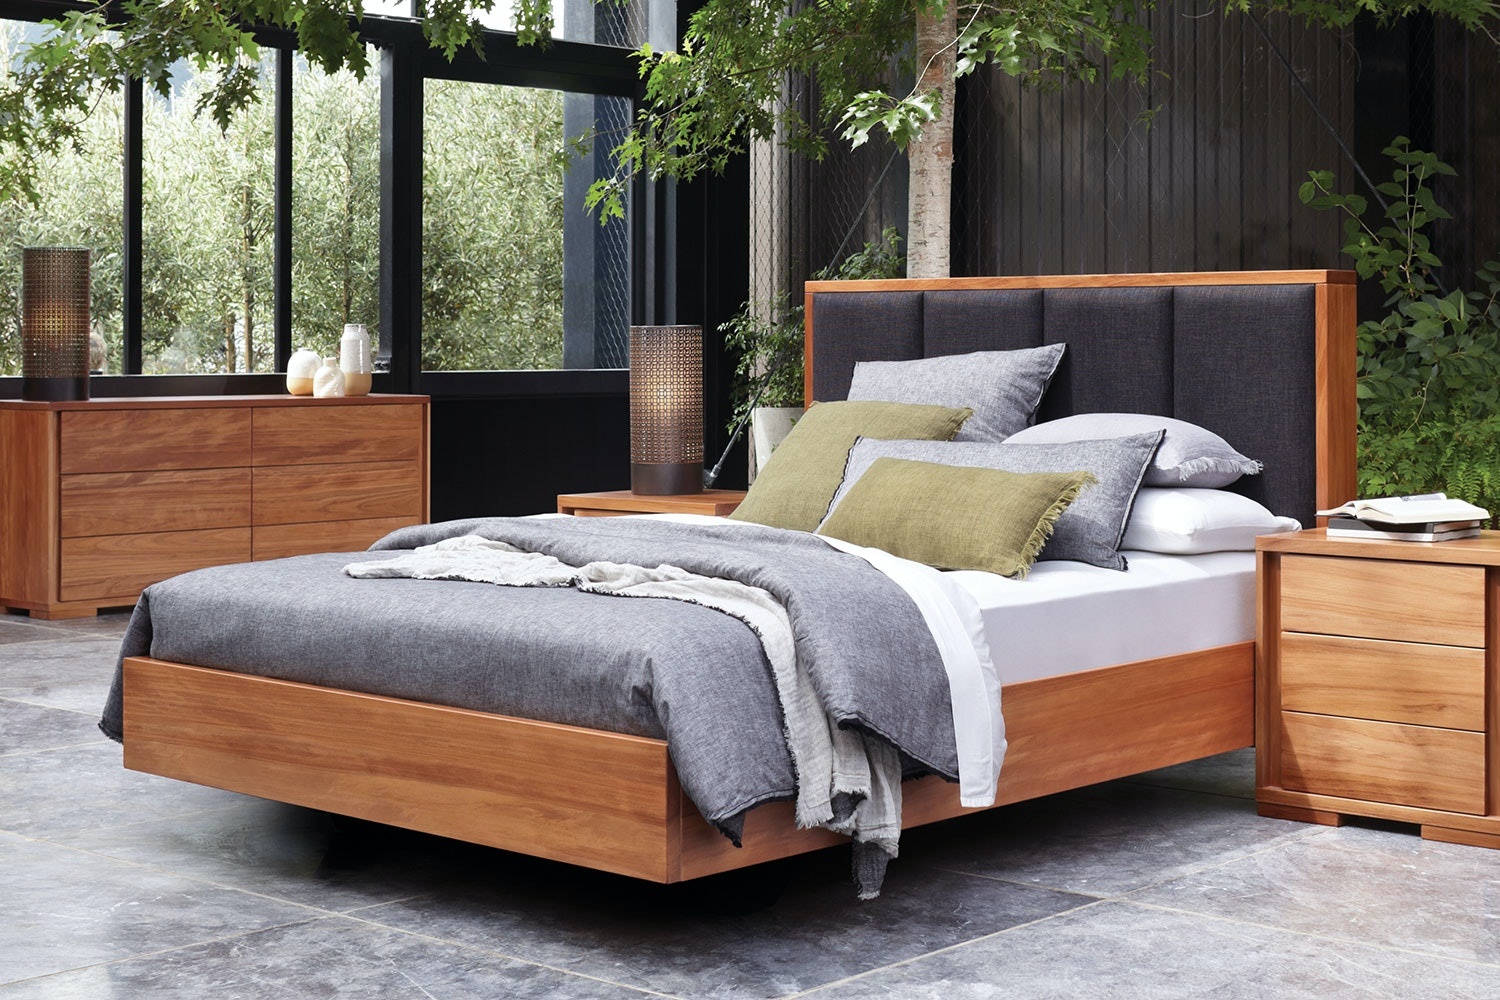 Kauri Grove Queen Bed Frame by Ezirest Furniture